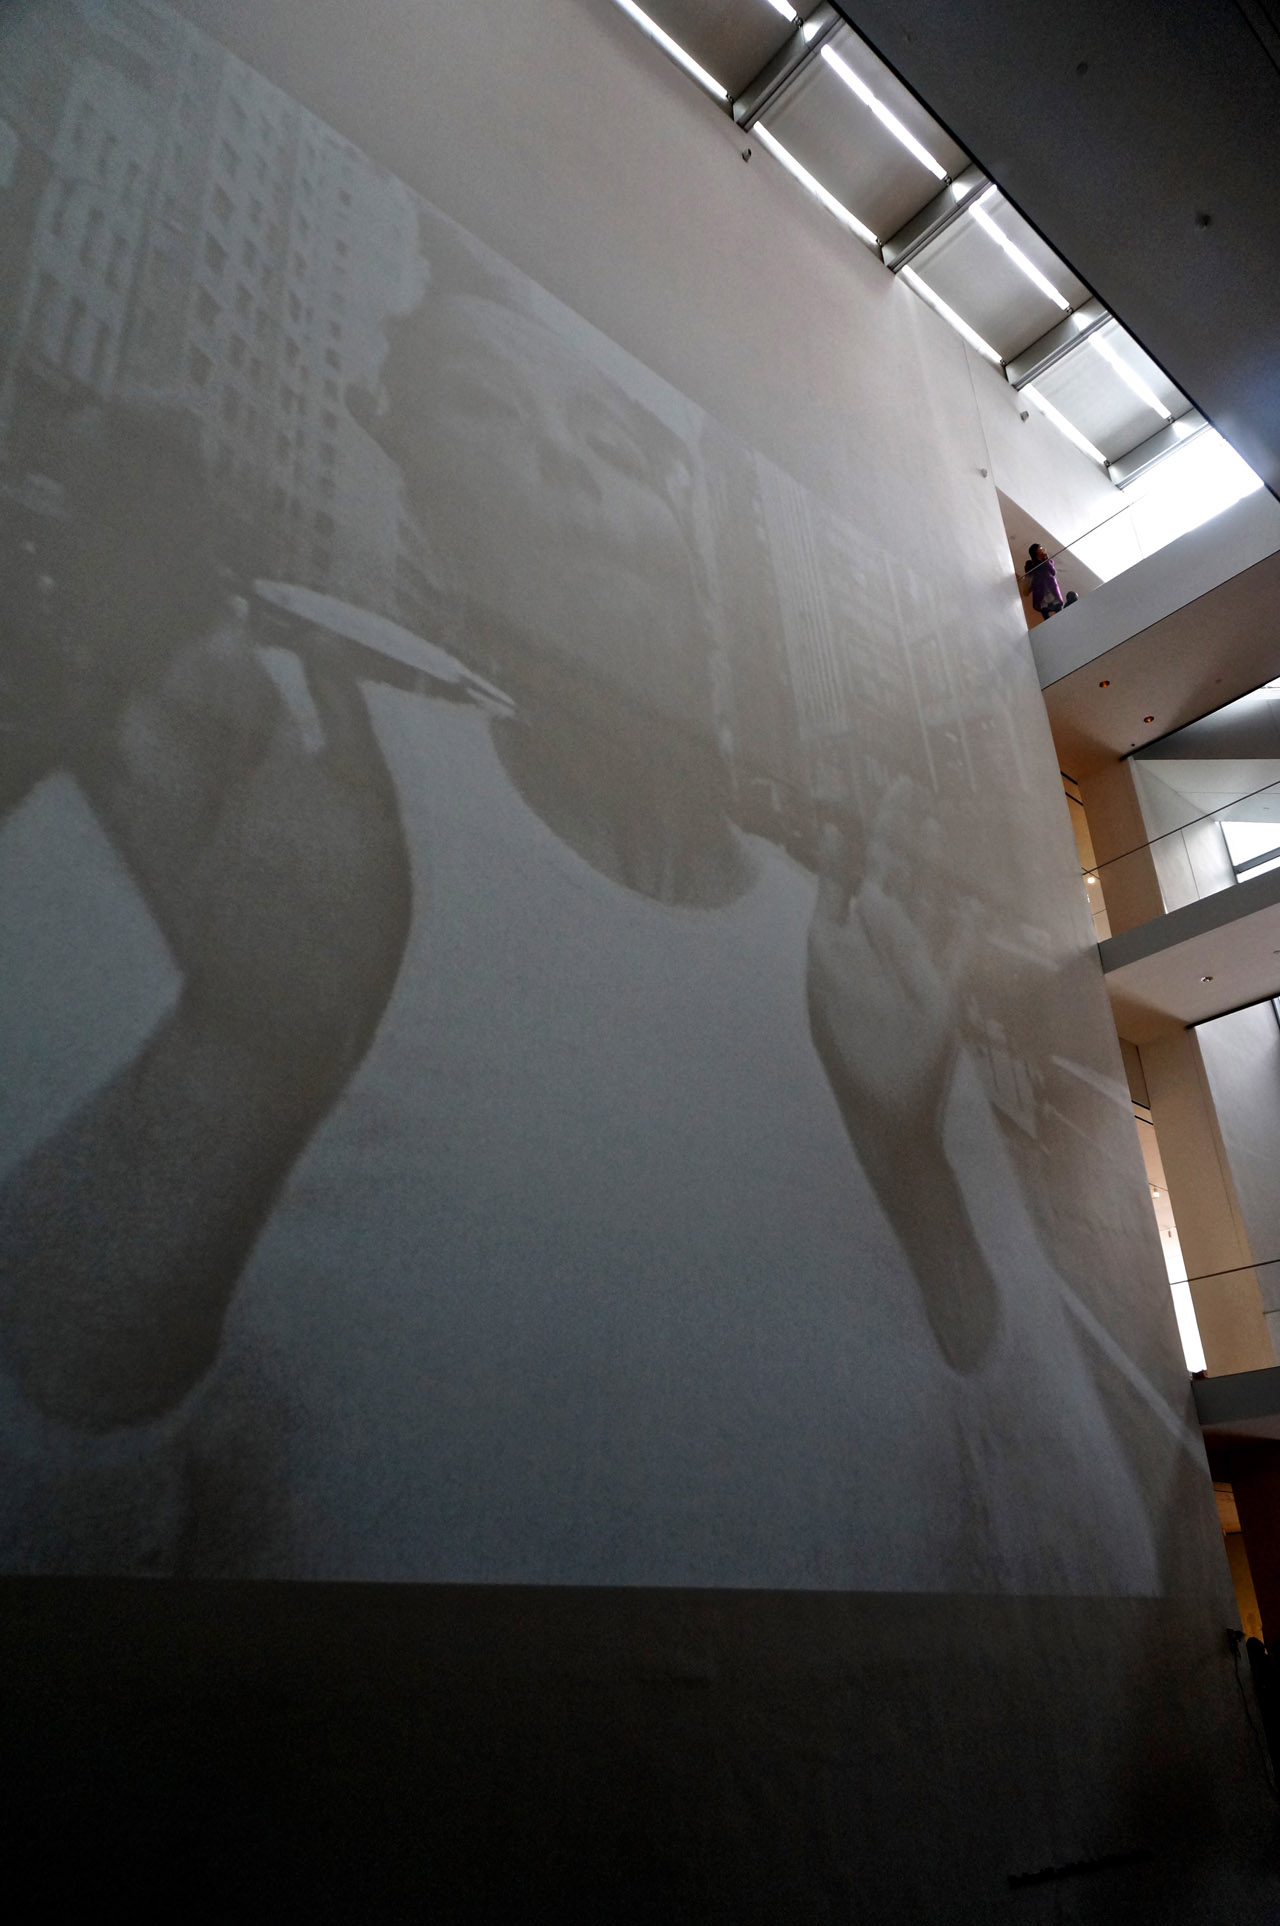 """Björk's and director Stephane Sednaoui's """"Big Time Gravity"""" video (1993), projected on a large wall at MoMA"""